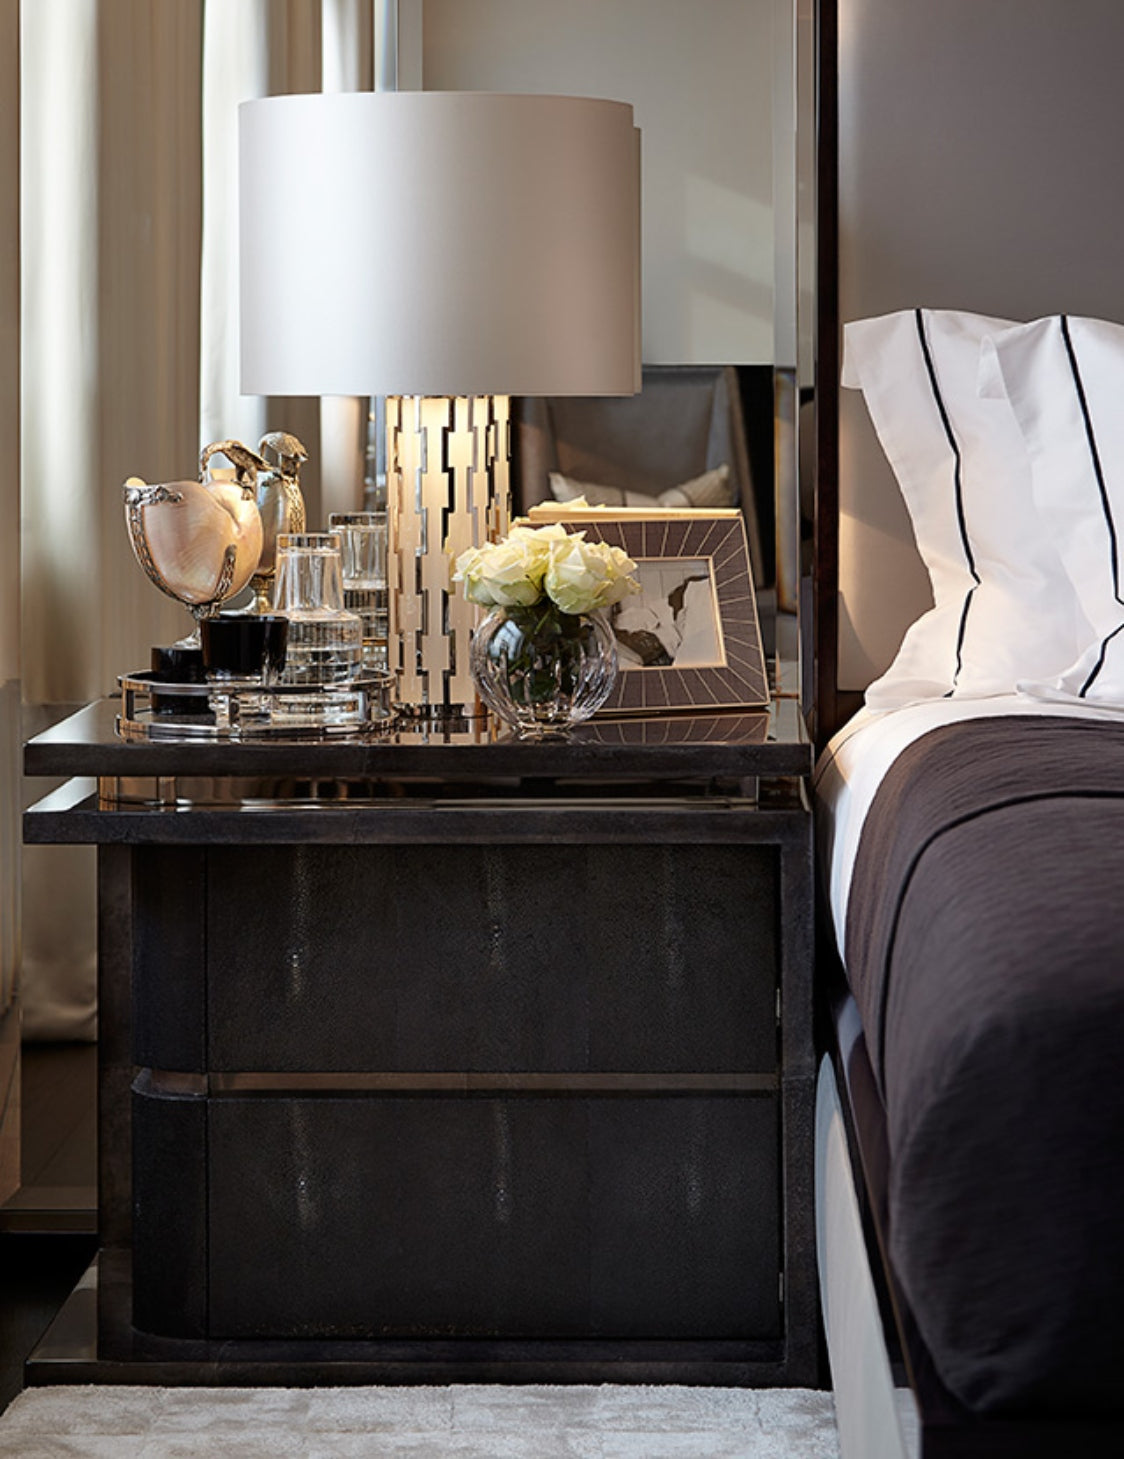 How To Style A Bedside Table - Styling Bedside Tables - Contrast and complement